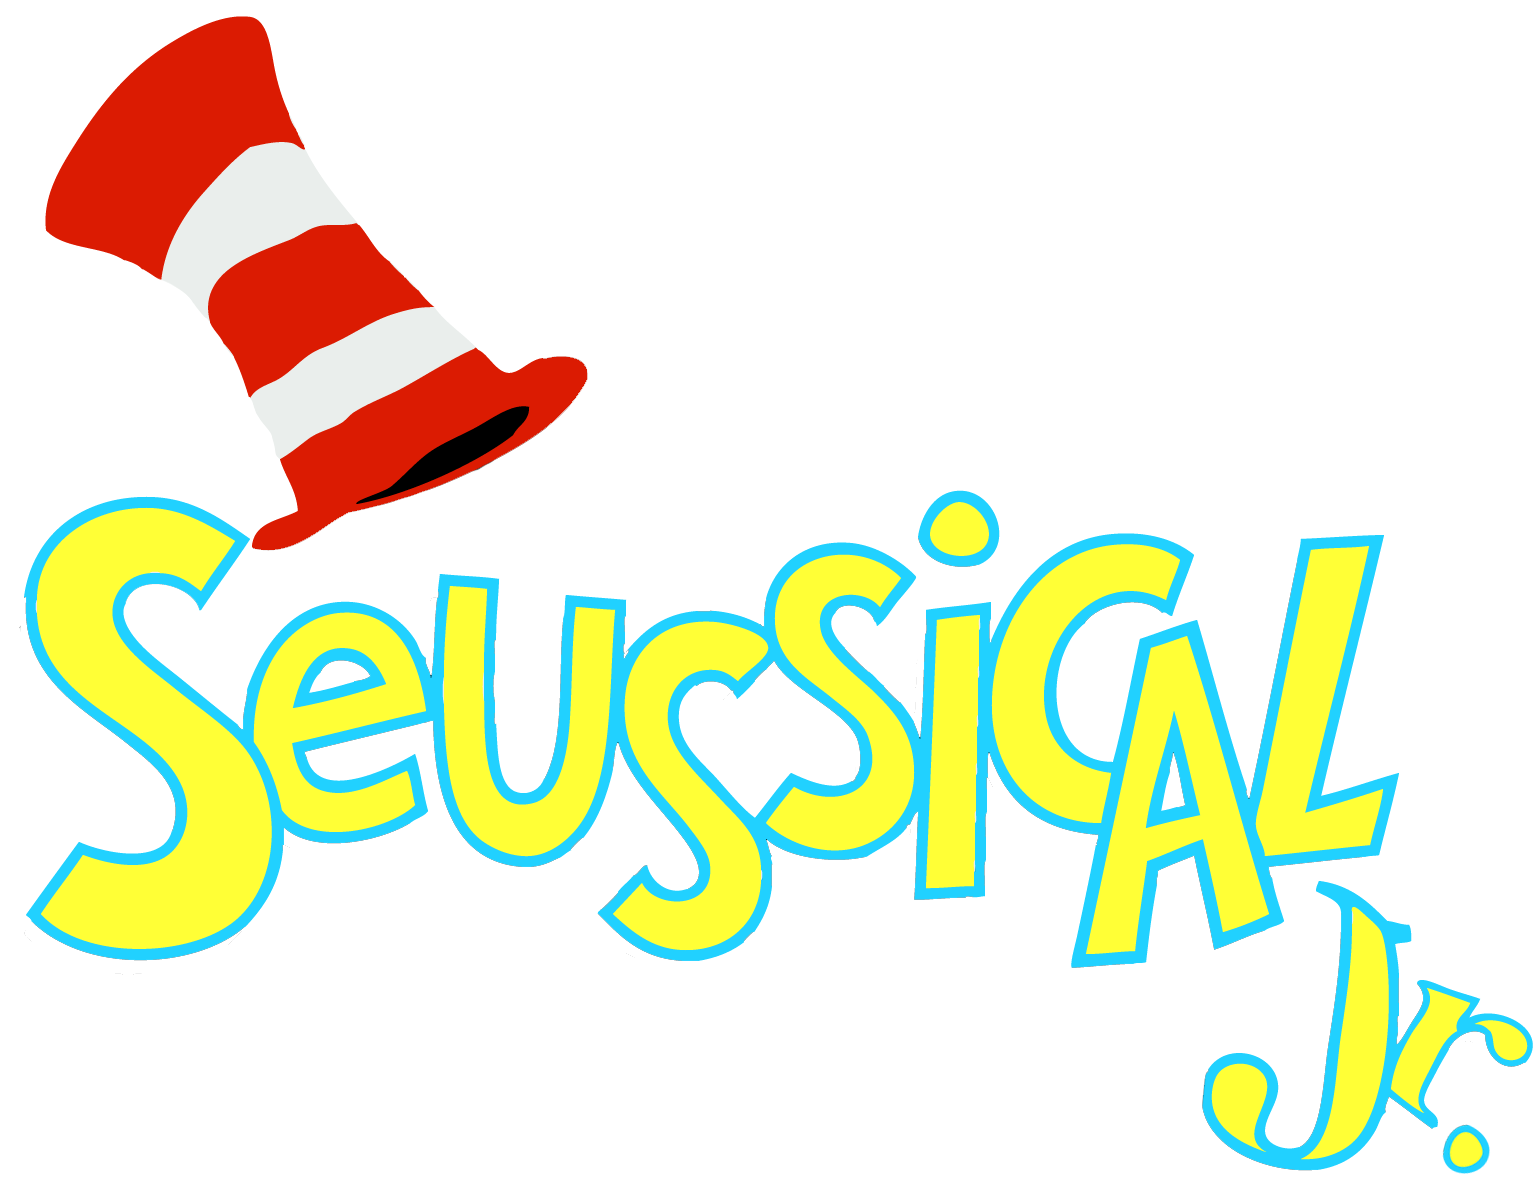 Dust clipart speck. Phx stages seussical jr